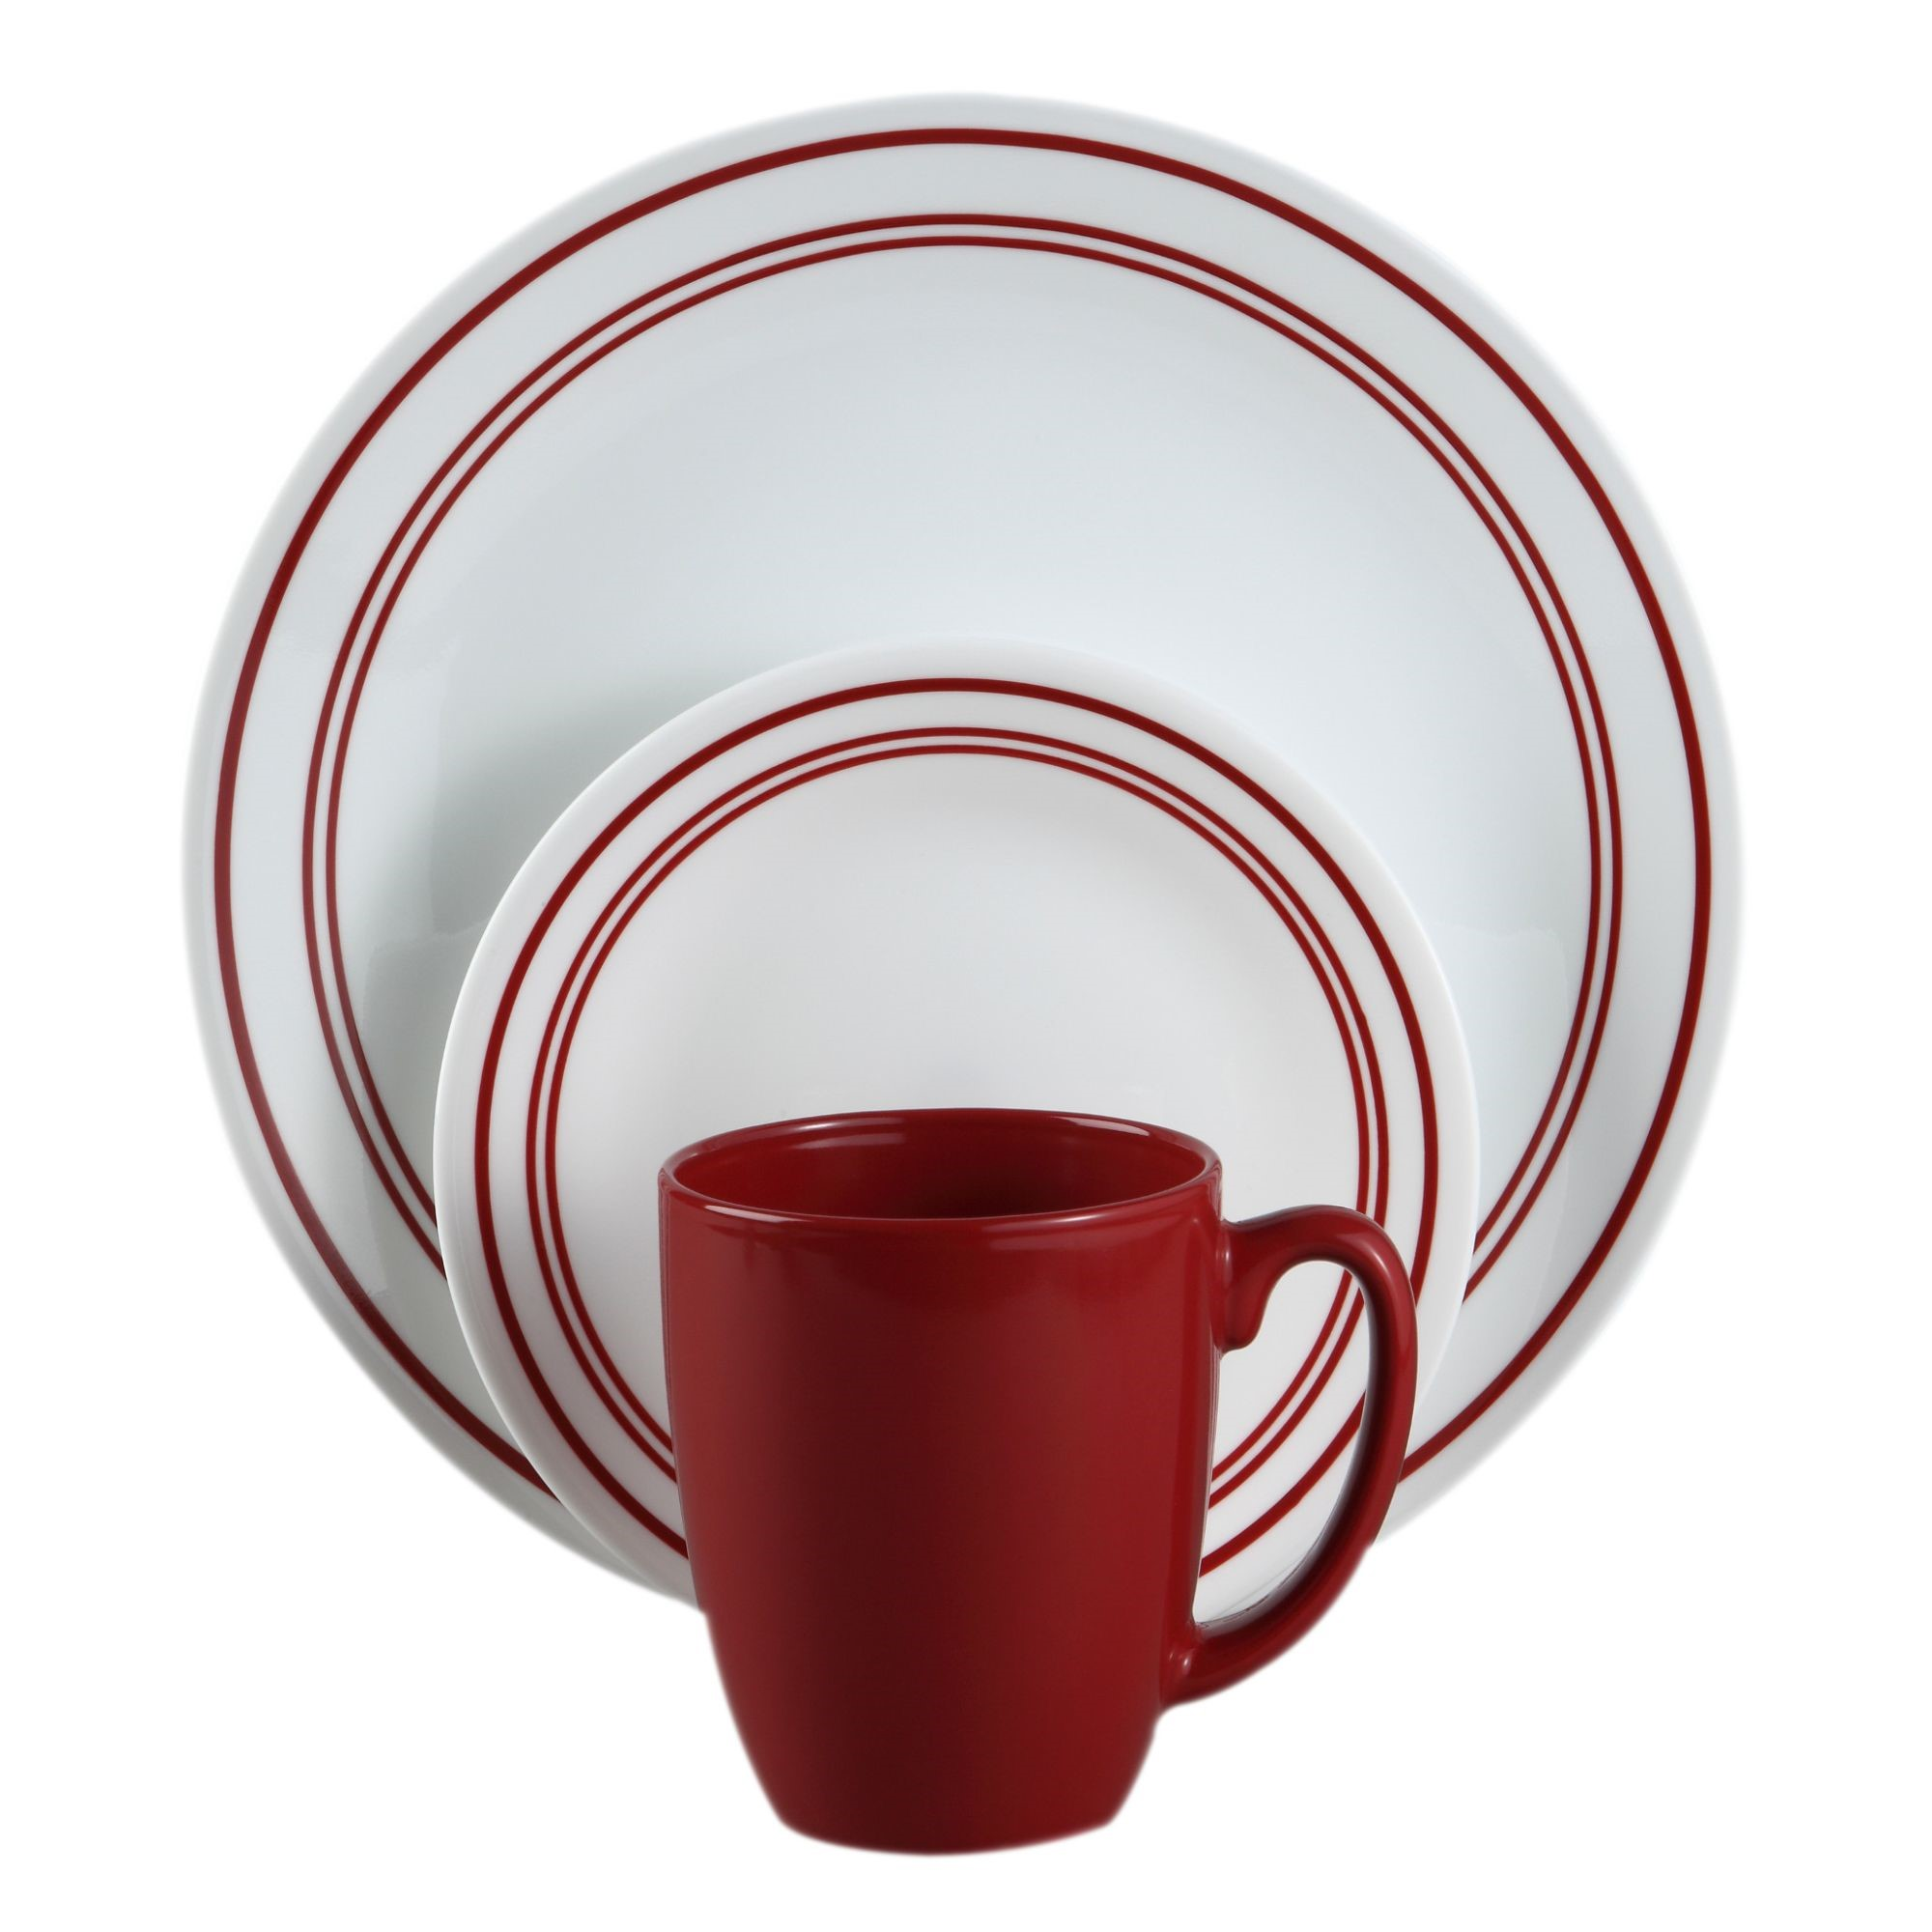 Corelle LivingWare Ceramic Dinnerware Set (18 Pieces), Red